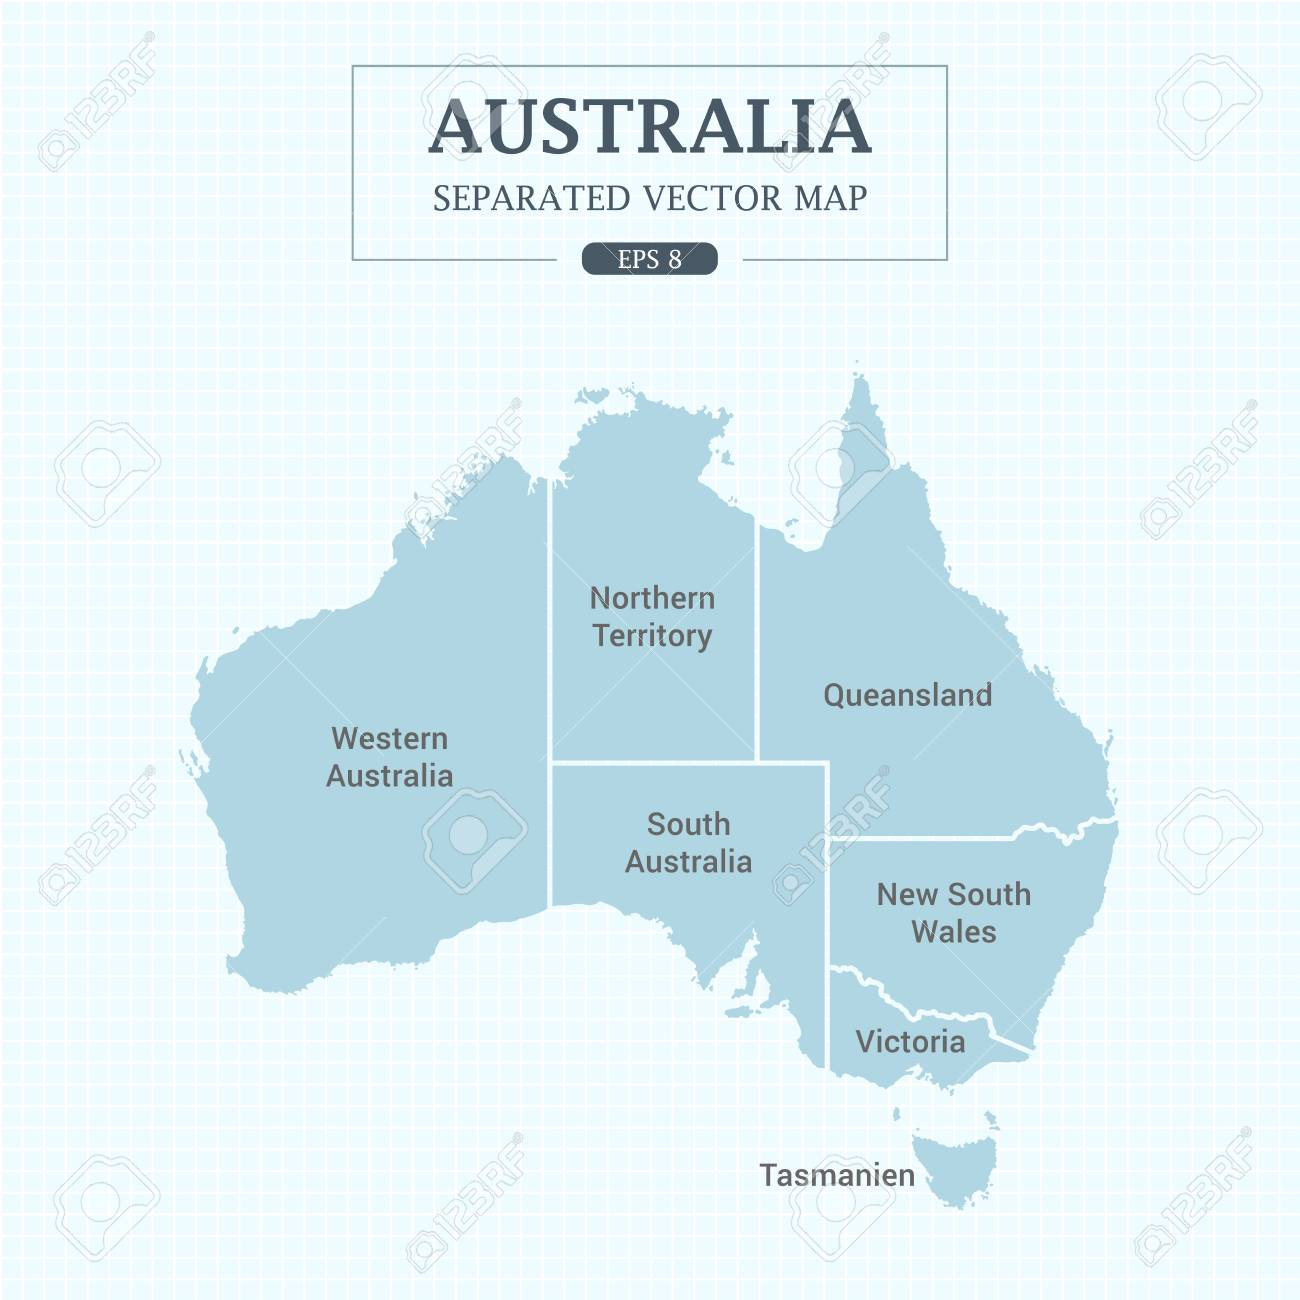 Australia Map Vector With States.Australia Map Mono Color High Detail Separated All States Vector